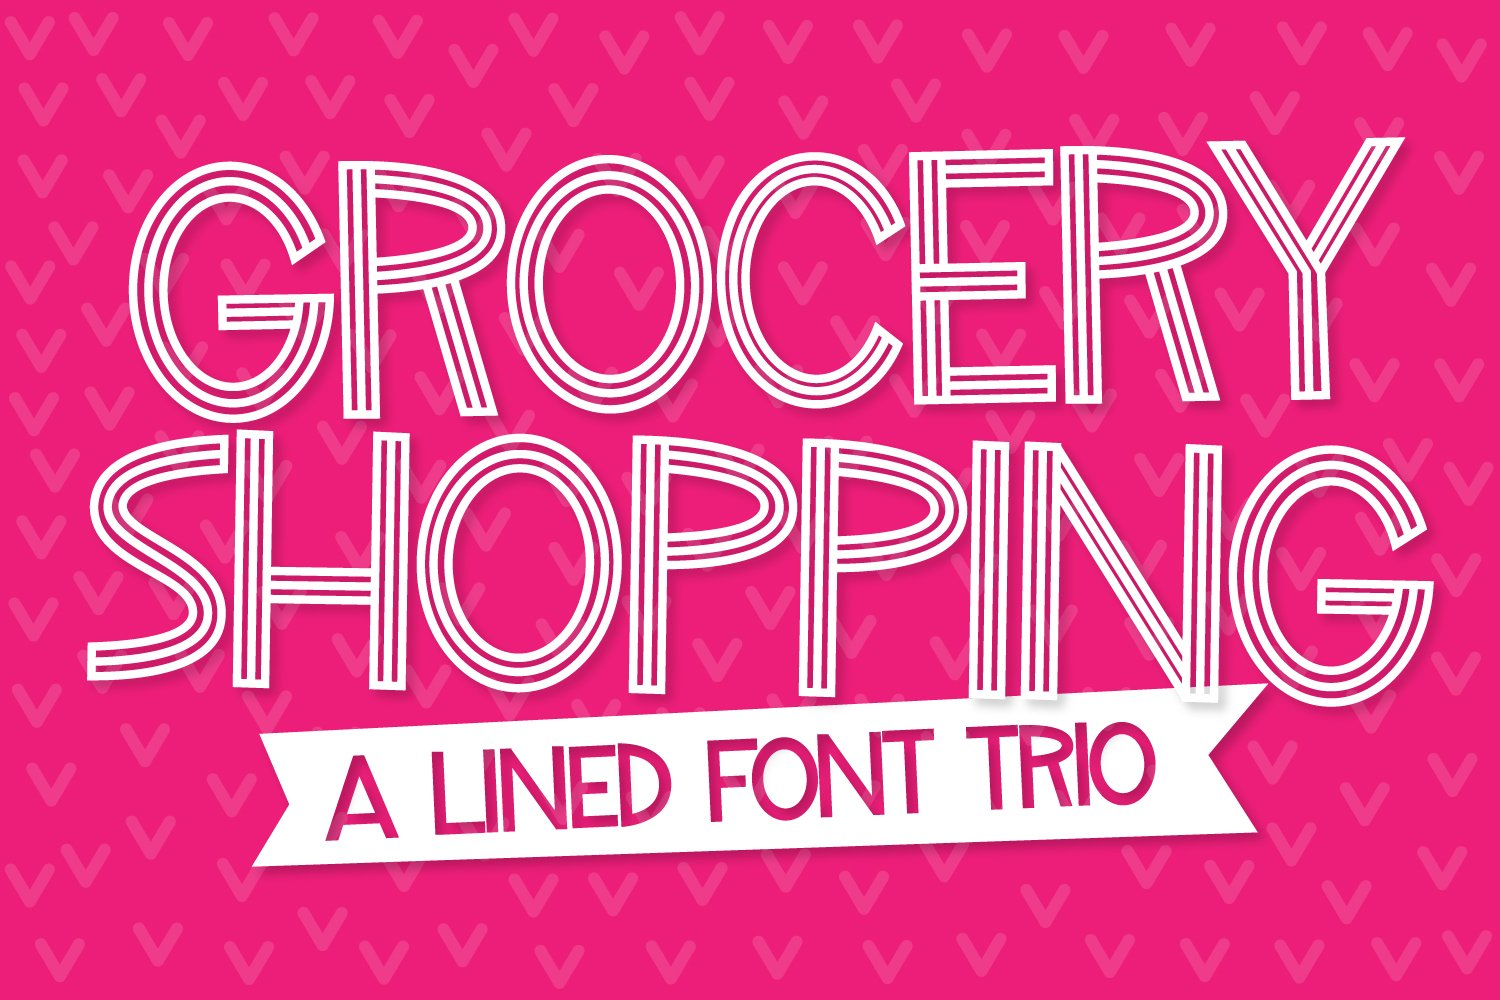 Grocery Shopping - A Lined Font Trio example image 1